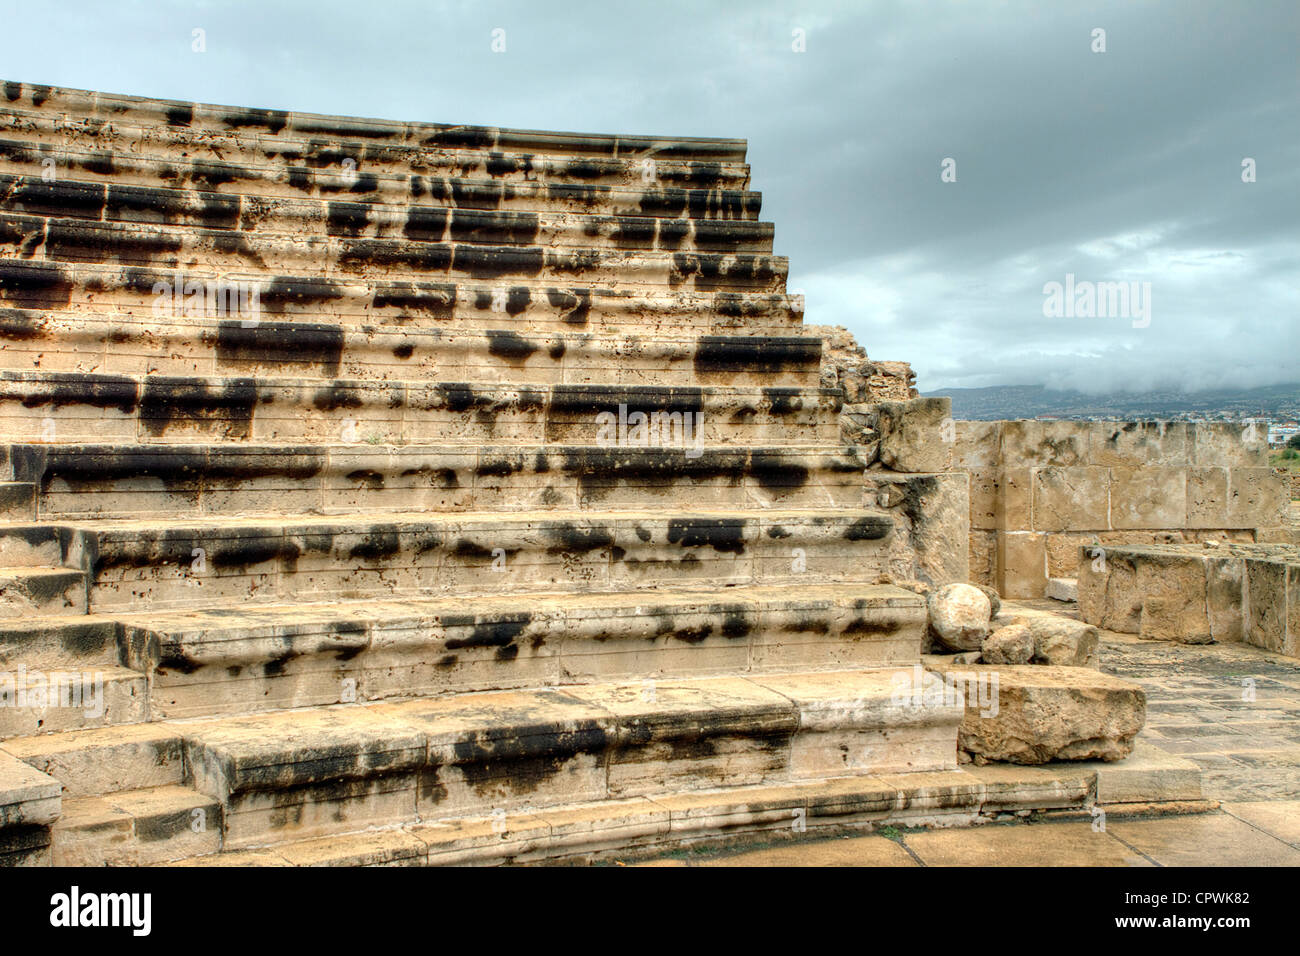 The odeon in the grounds of paphos castle Stock Photo